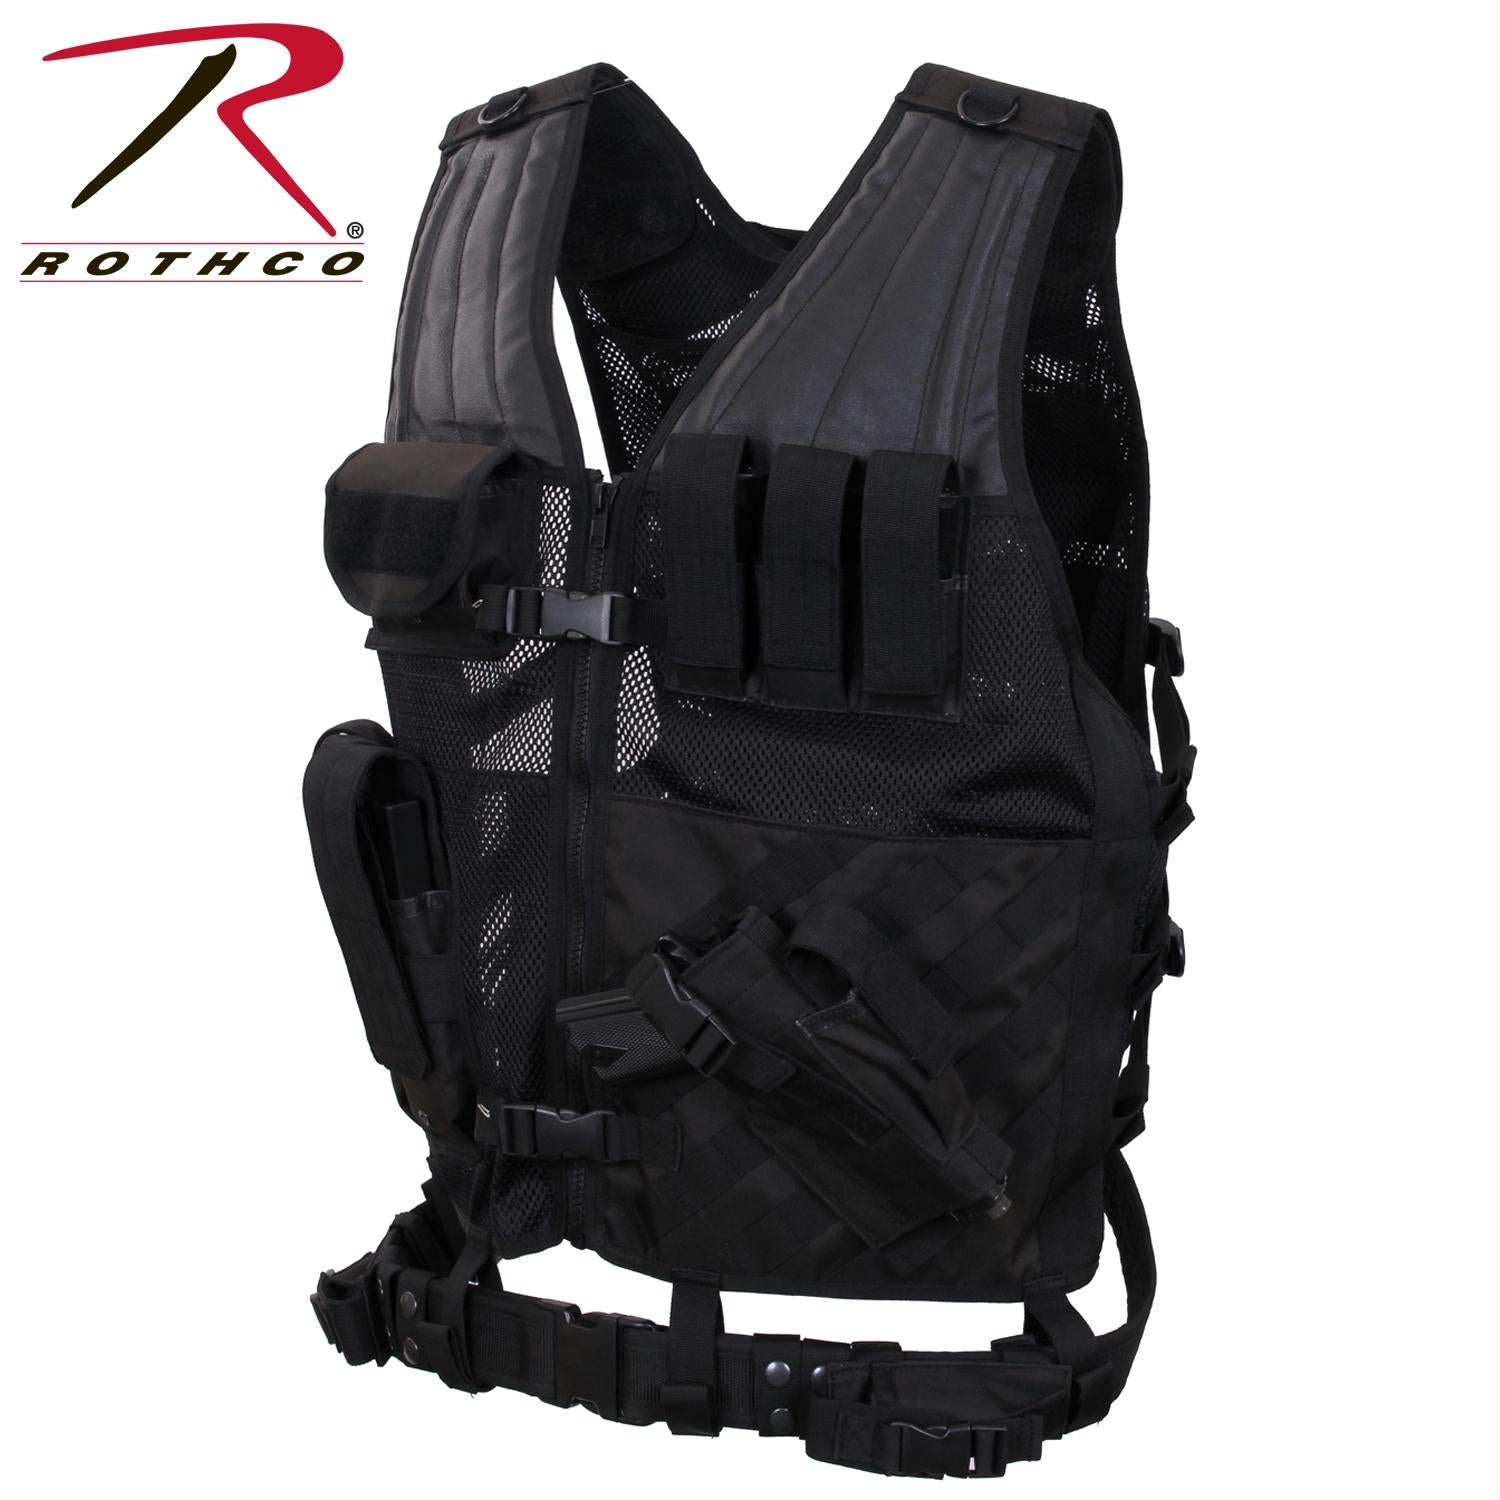 Rothco Cross Draw MOLLE Tactical Vest - Black / Oversized